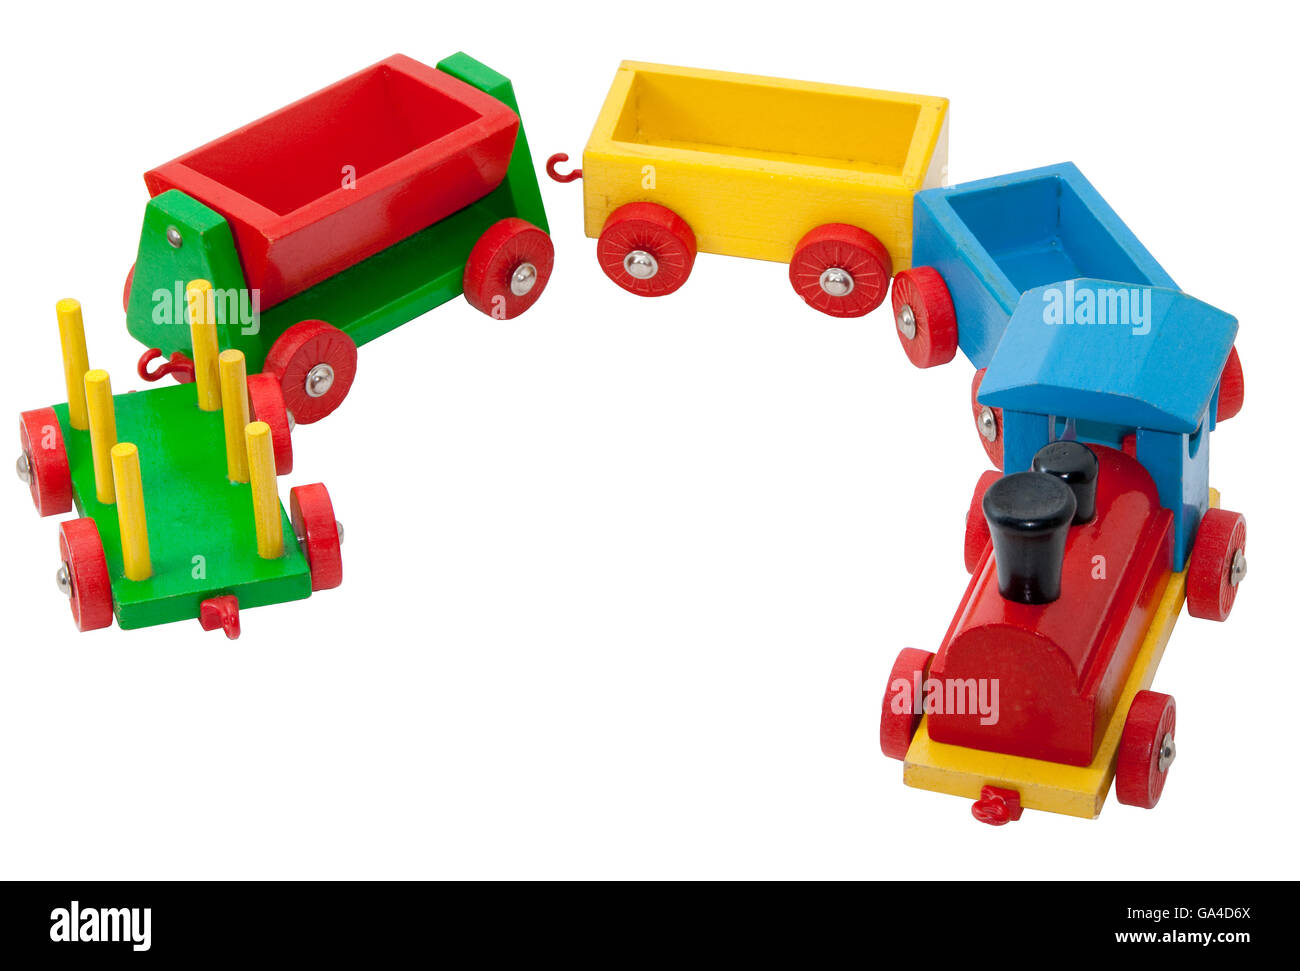 Colorful wooden model railway with steam locomotive and goods waggons - Stock Image